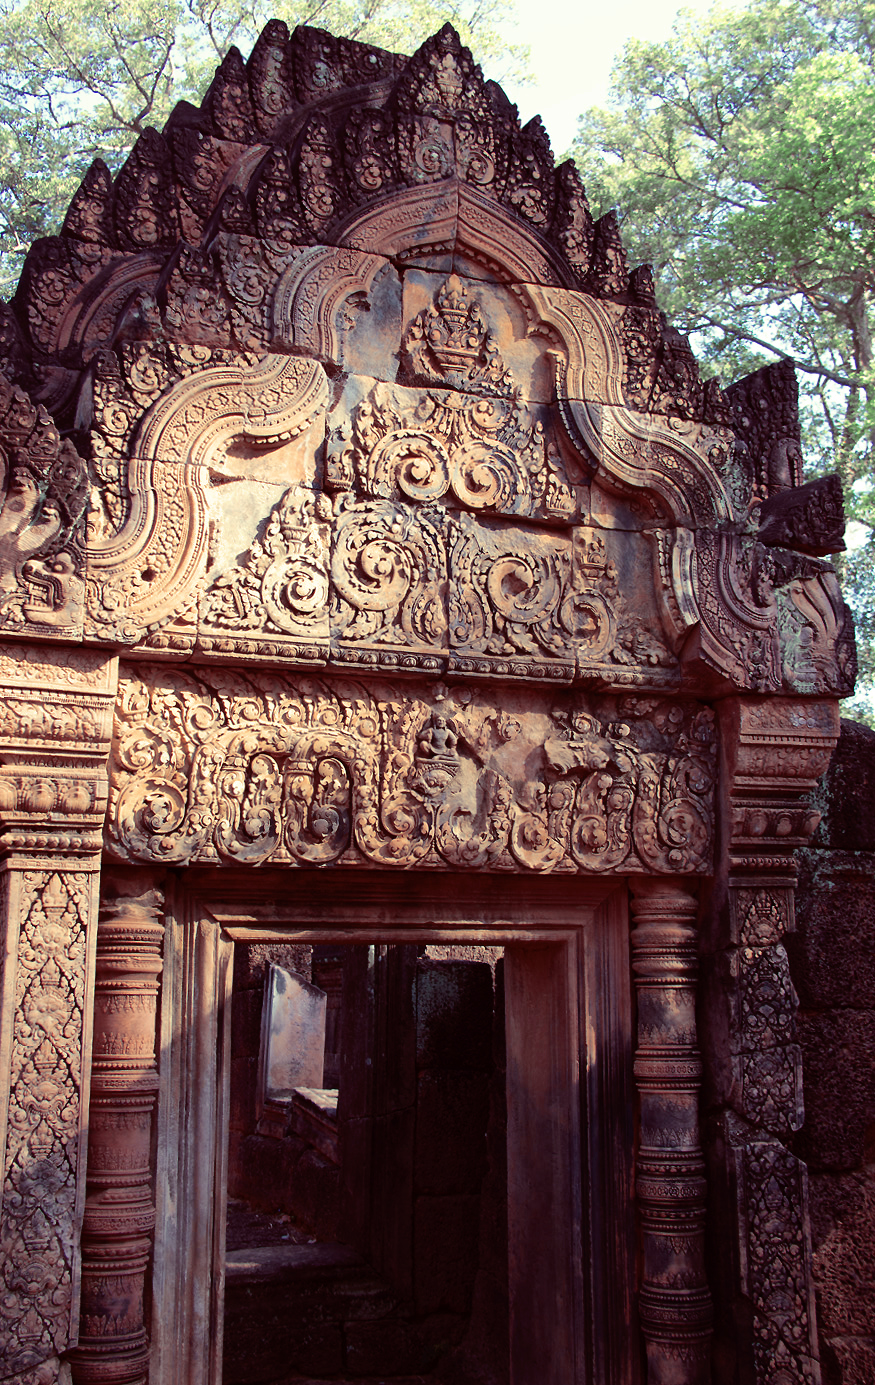 Doorway with kala, a monster that symbolises time, in Banteay Srei, © Claire Orrell 2014